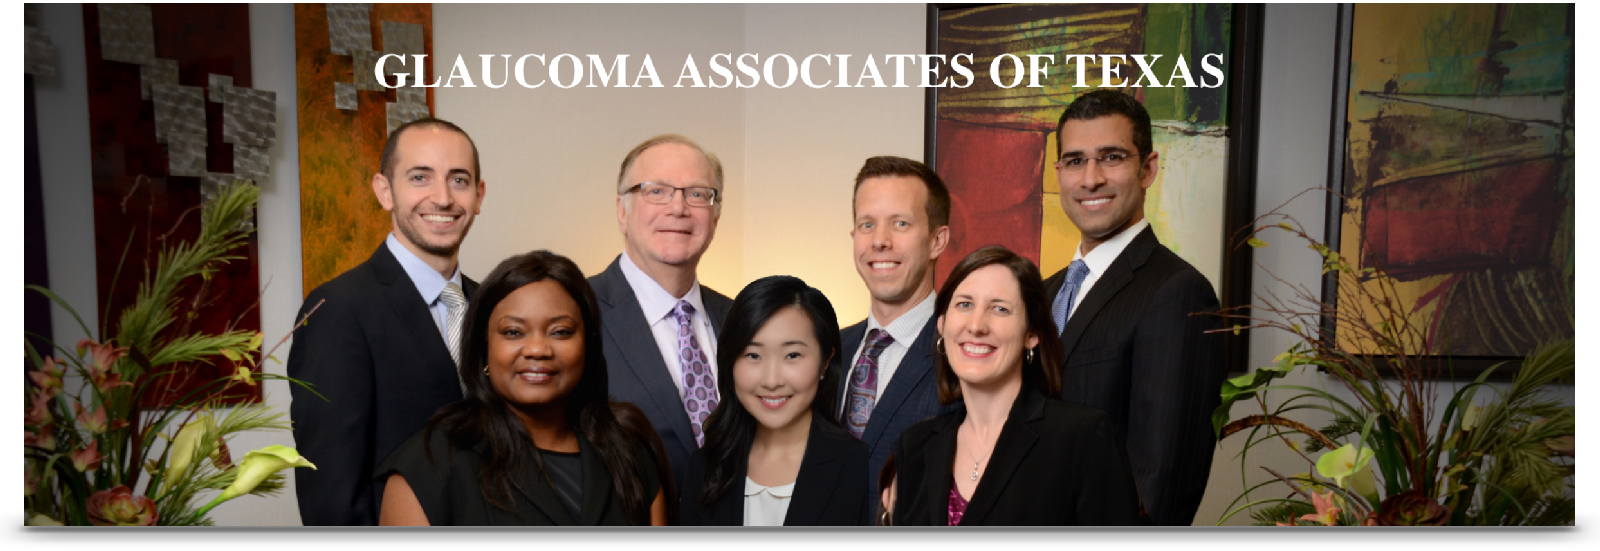 Glaucoma Associates of Texas GAT glaucoma eye doctor (ophthalmologist)